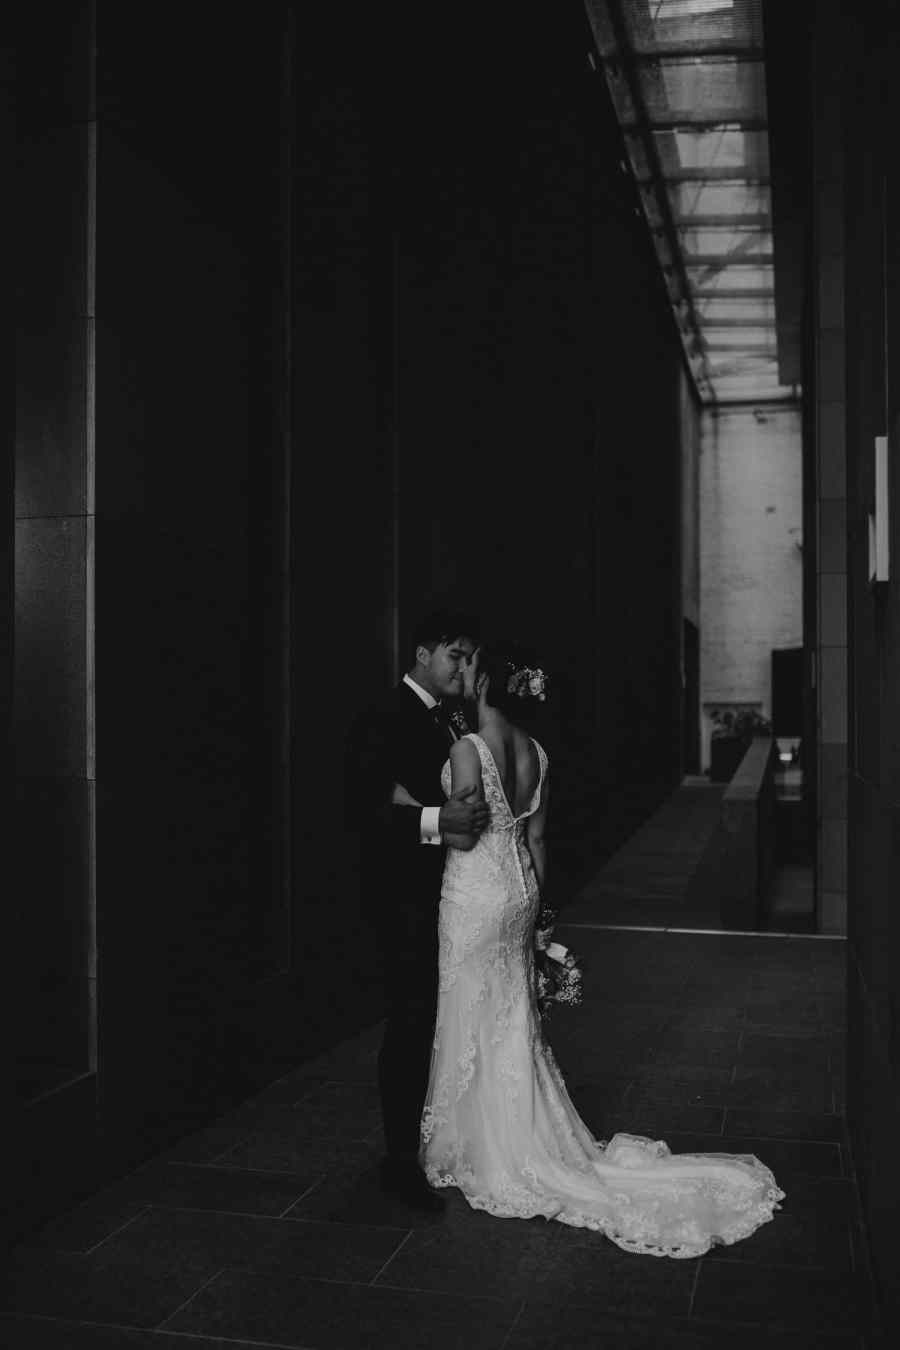 Ebony Blush Photography | Perth Wedding Photographer | Photography + Film | Sandalford Winery | Como Treasury Wedding | Perth City Wedding |Alex + Mel83